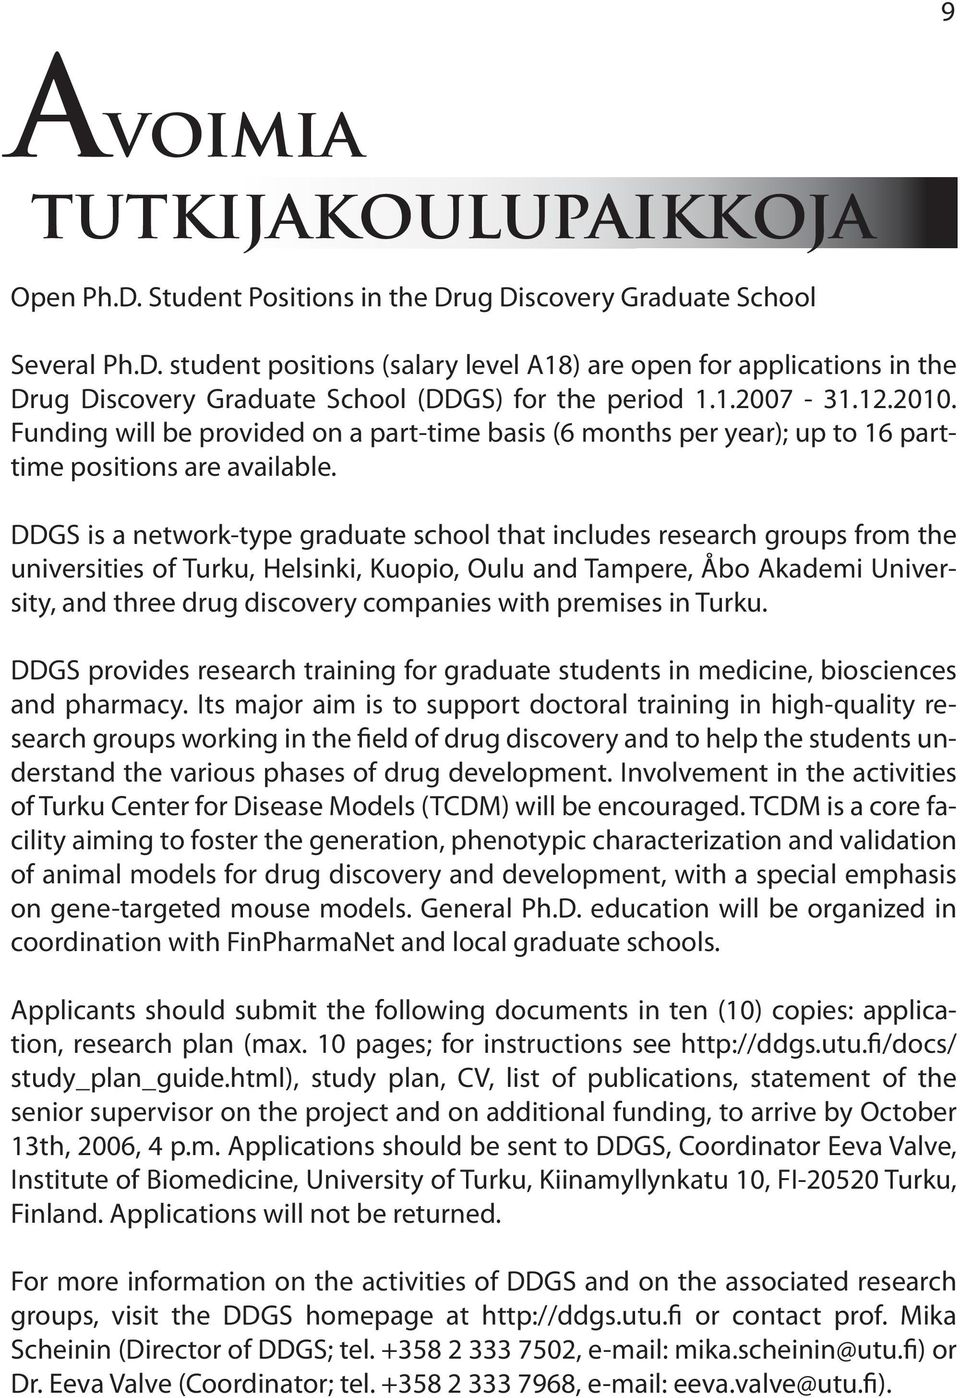 DDGS is a network-type graduate school that includes research groups from the universities of Turku, Helsinki, Kuopio, Oulu and Tampere, Åbo Akademi University, and three drug discovery companies